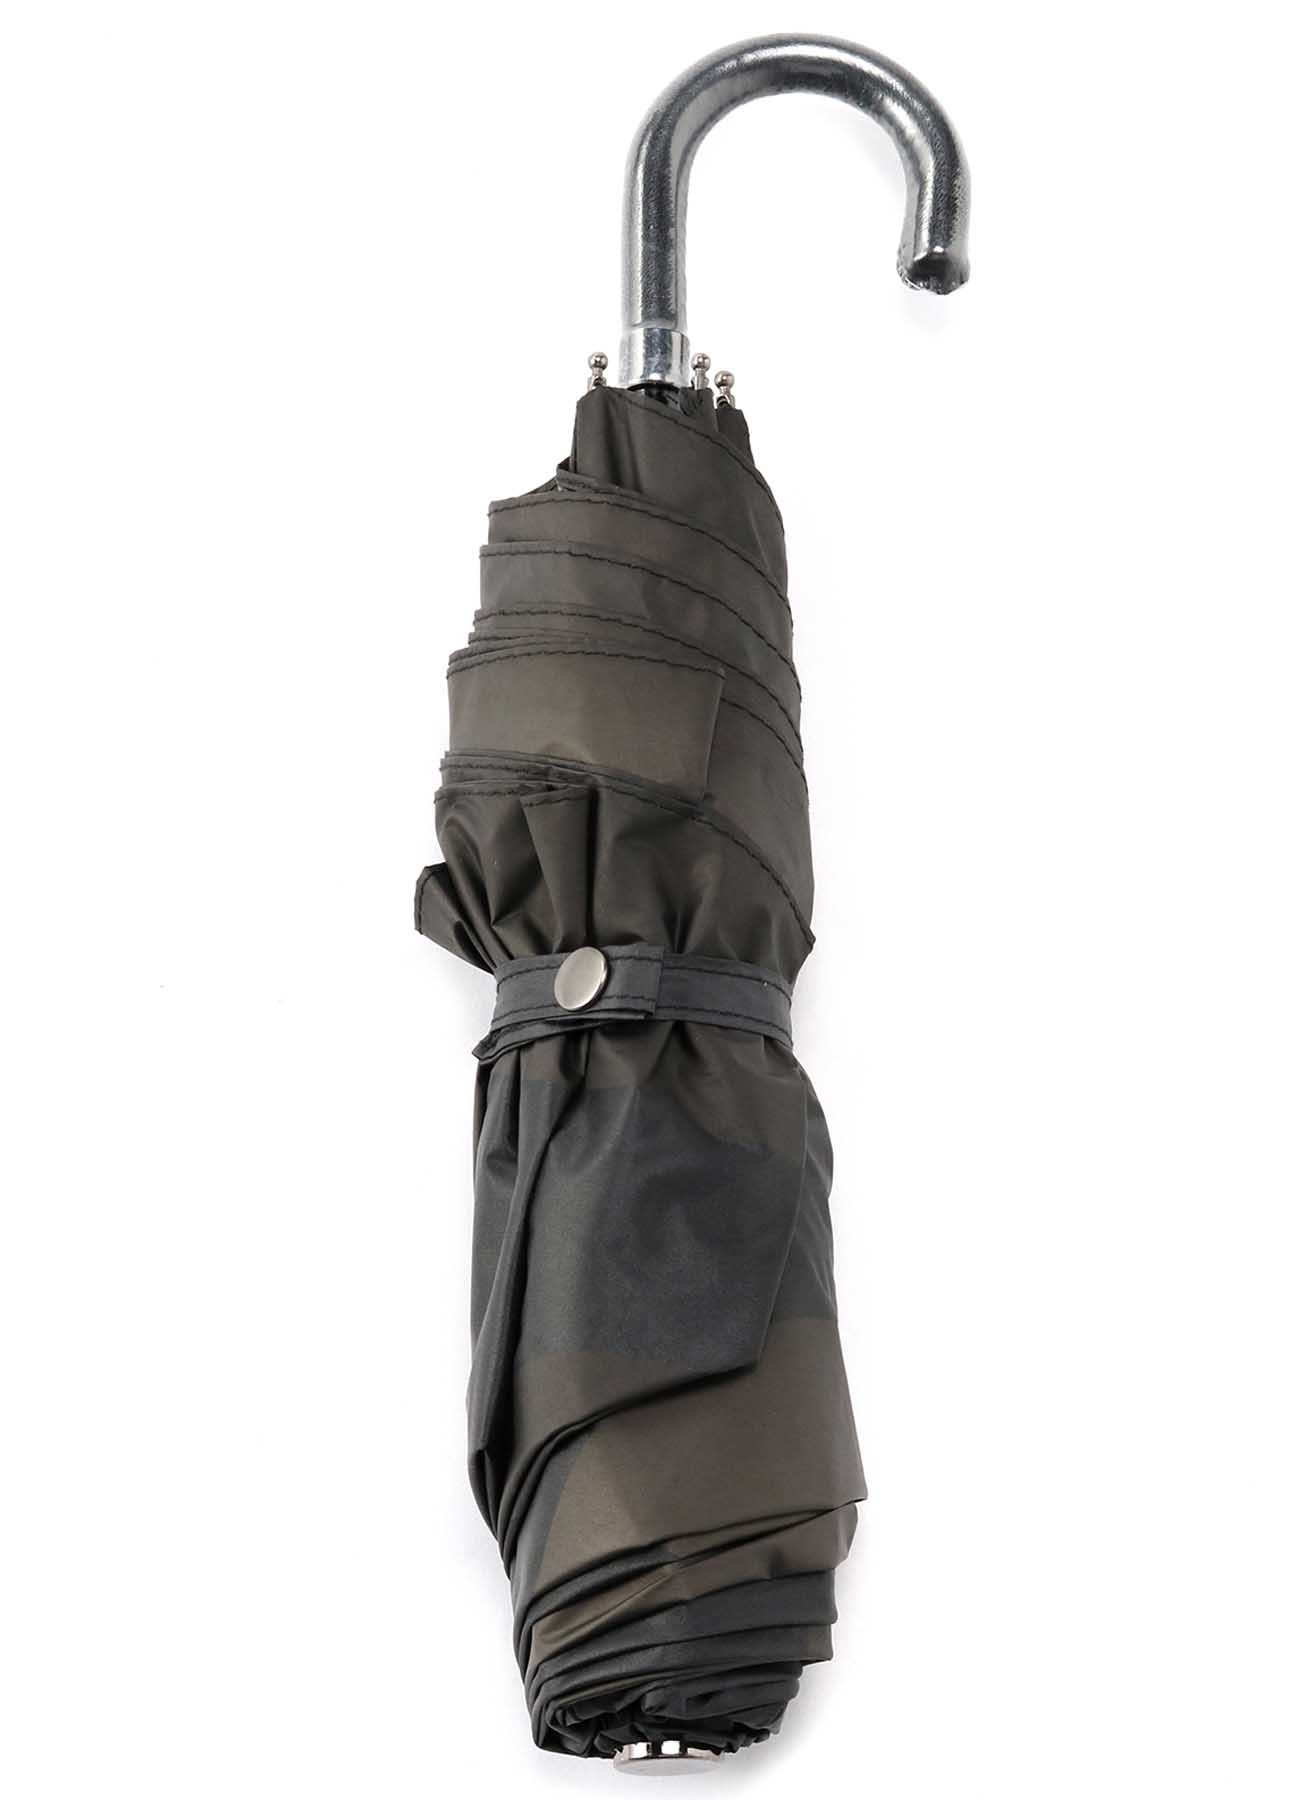 POLYESTER ALL WEATHER Y's DOT SUN UMBRELLA